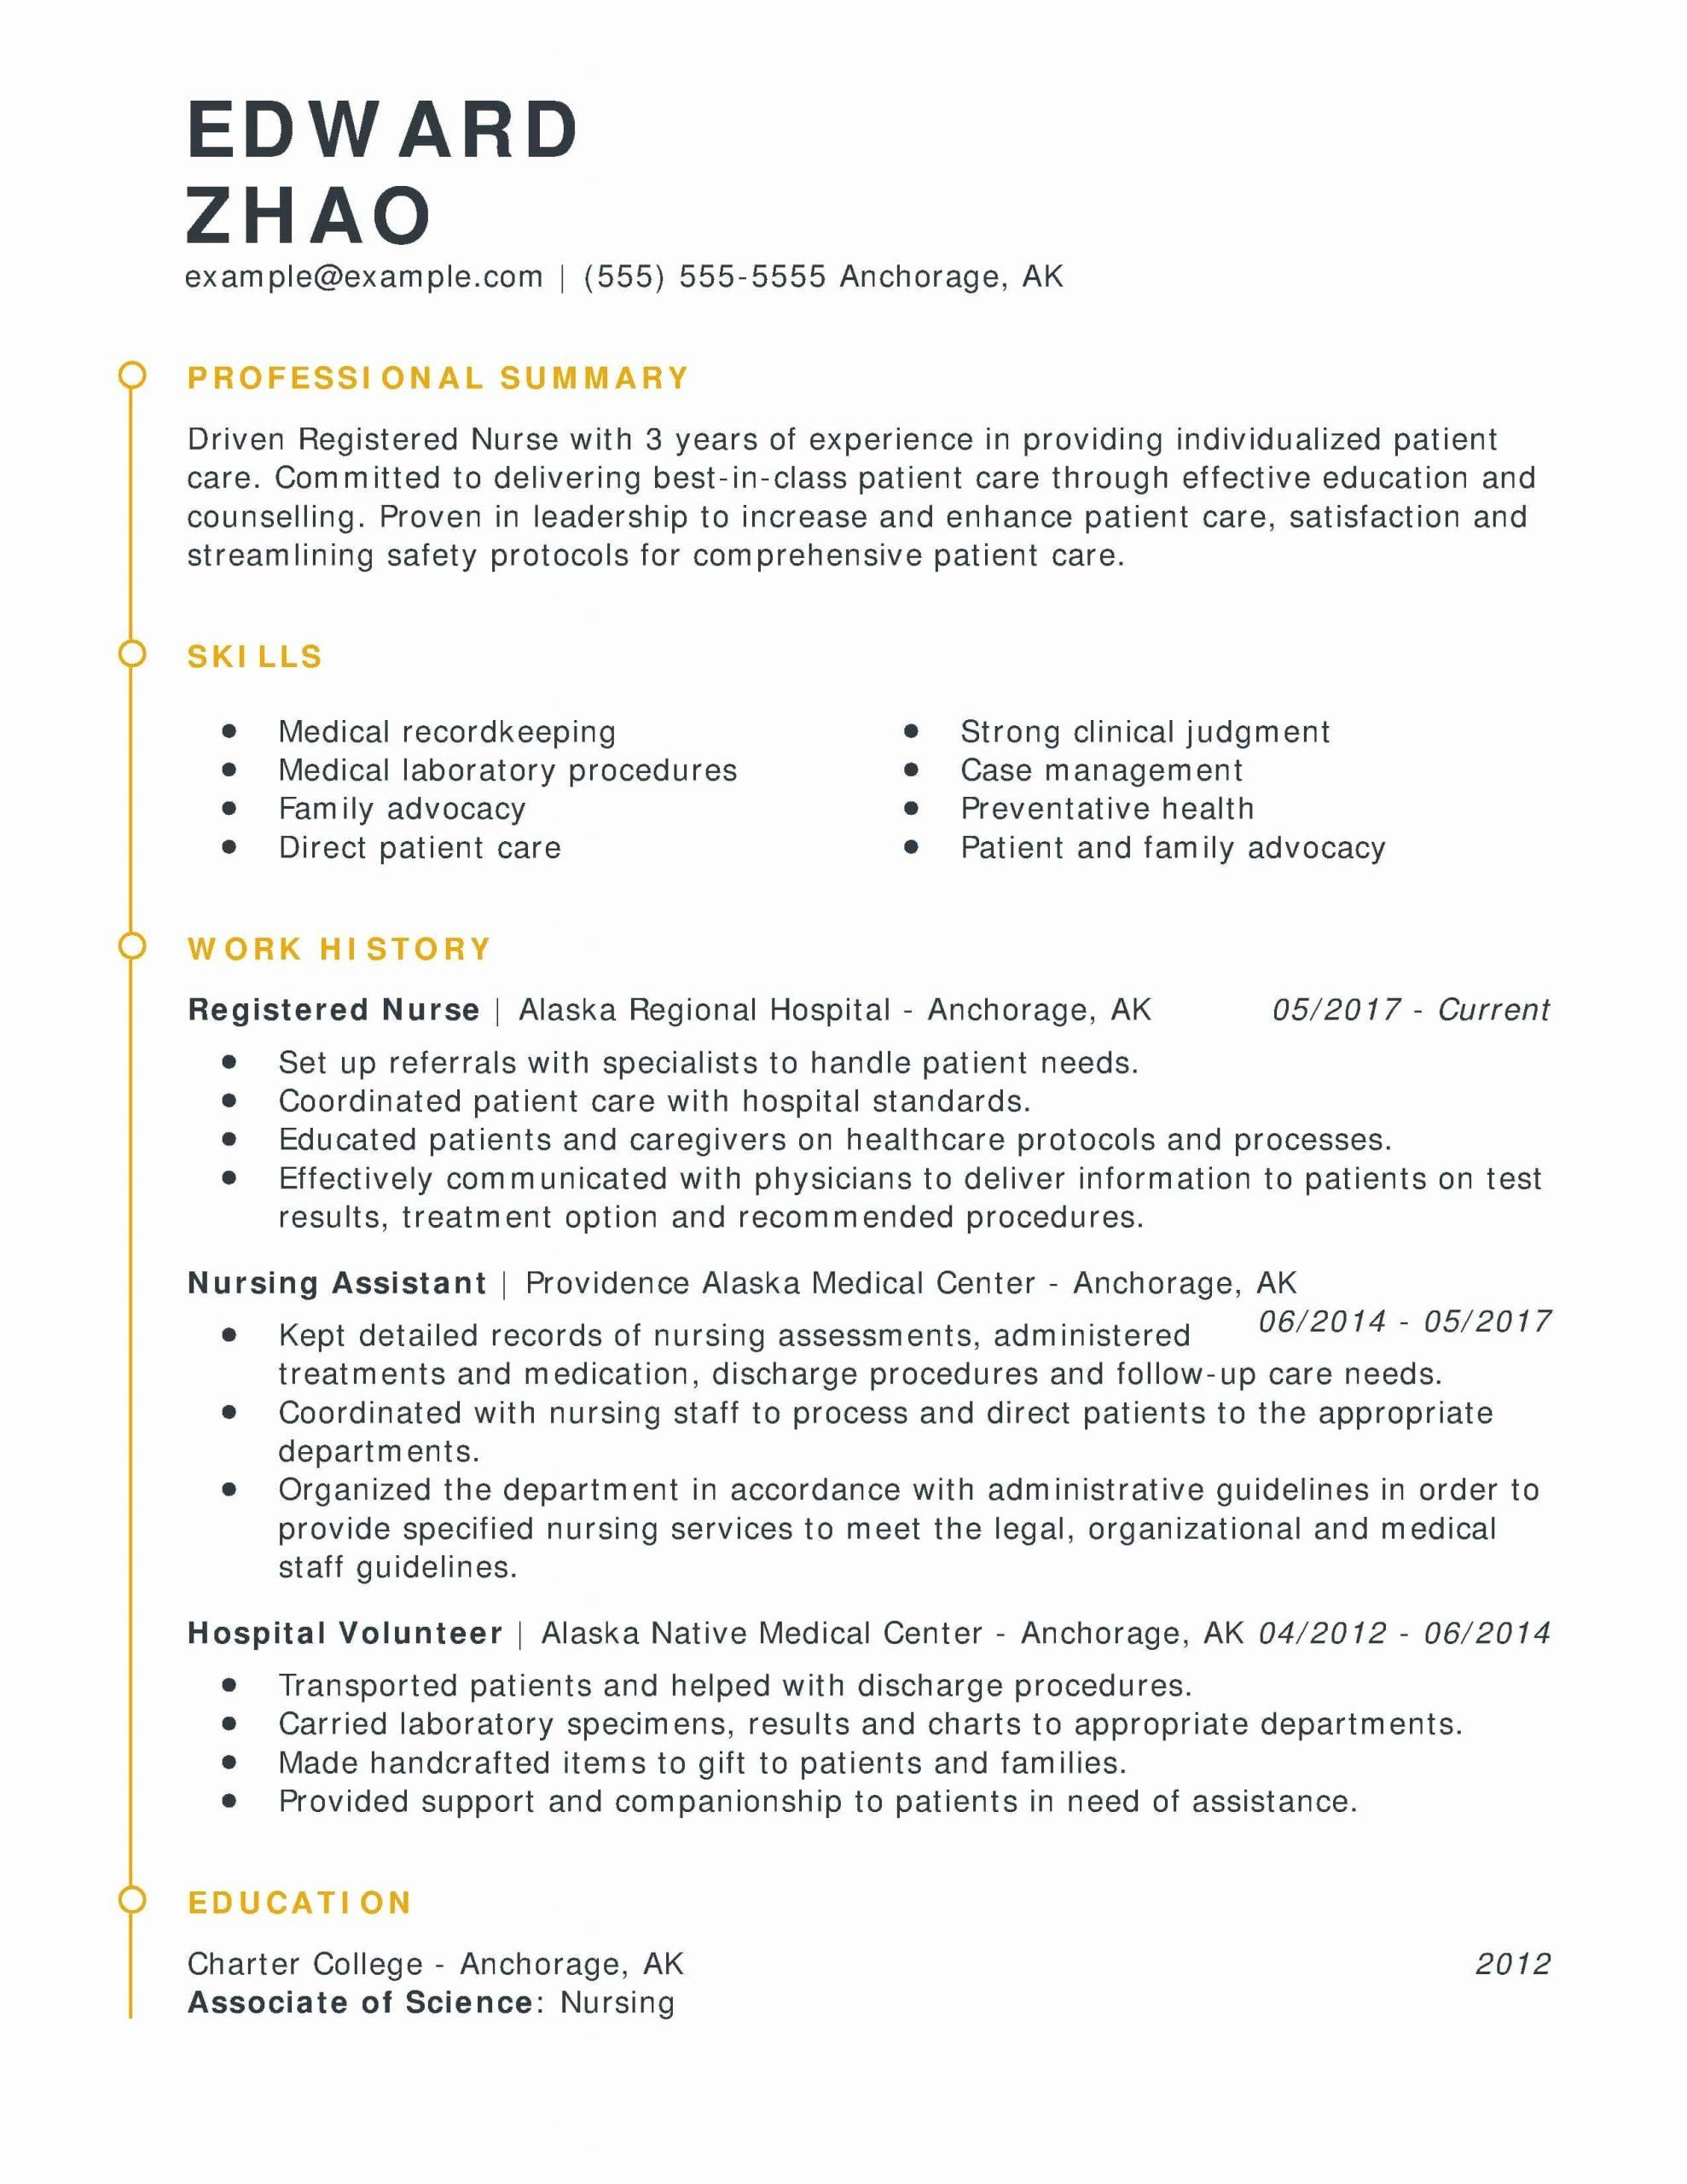 nursing skills resume inspirational customize your registered nurse with myperfe template Resume Professional Summary For Nursing Resume